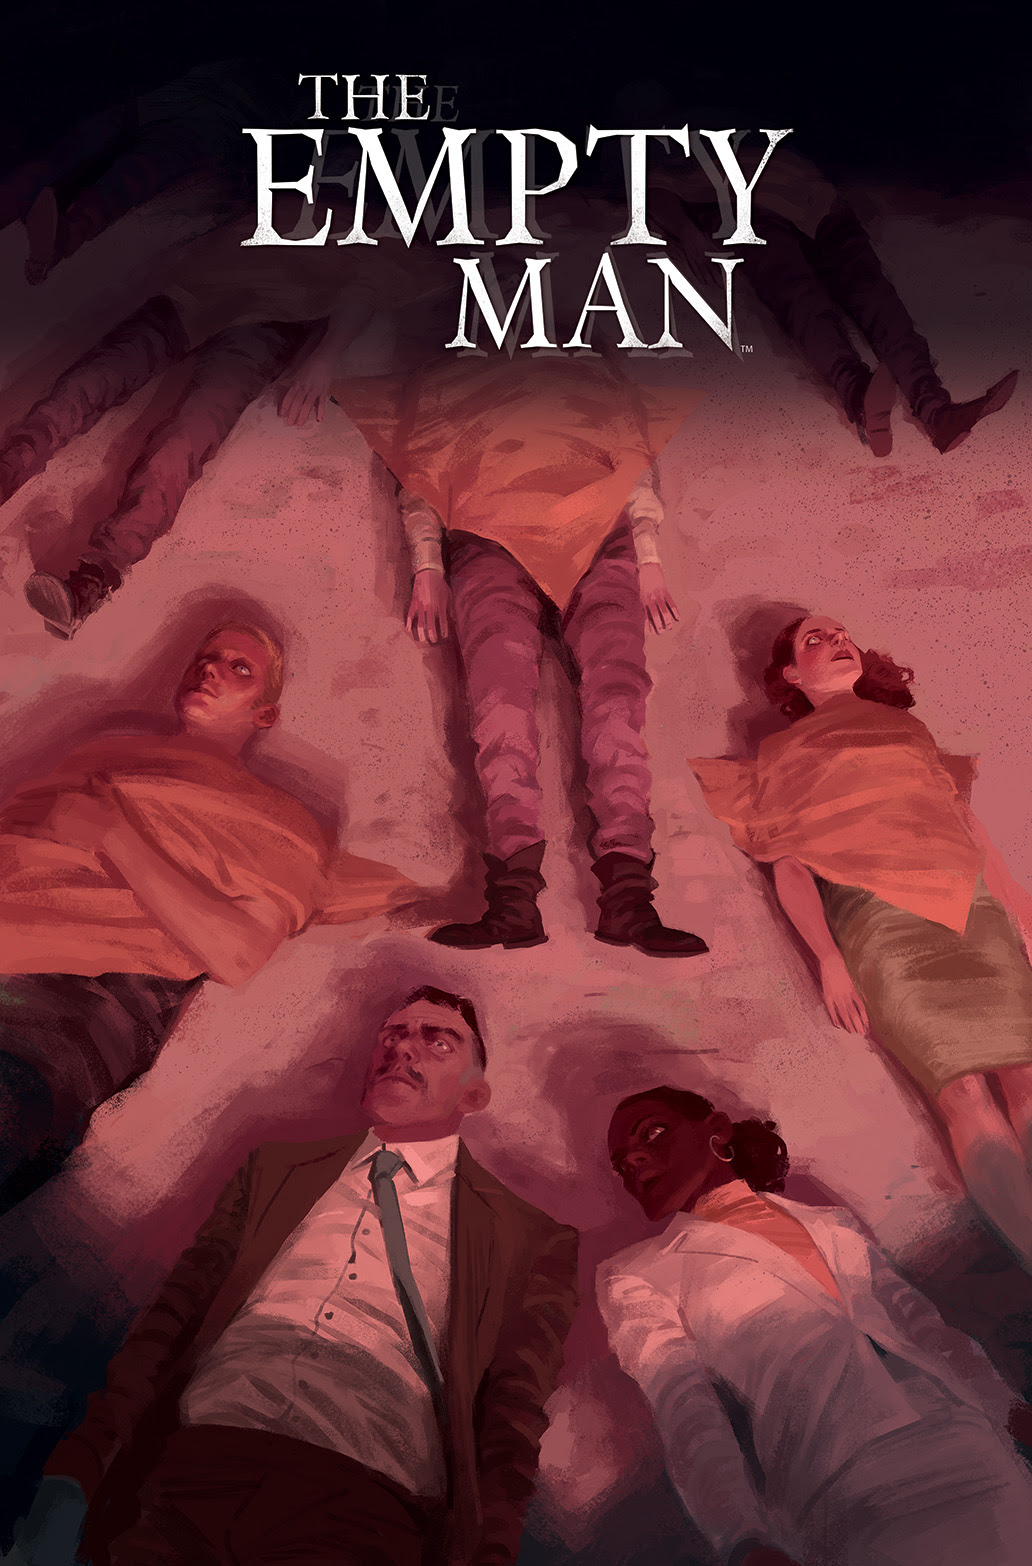 THE EMPTY MAN #1 Cover A by Vanesa R. Del Rey